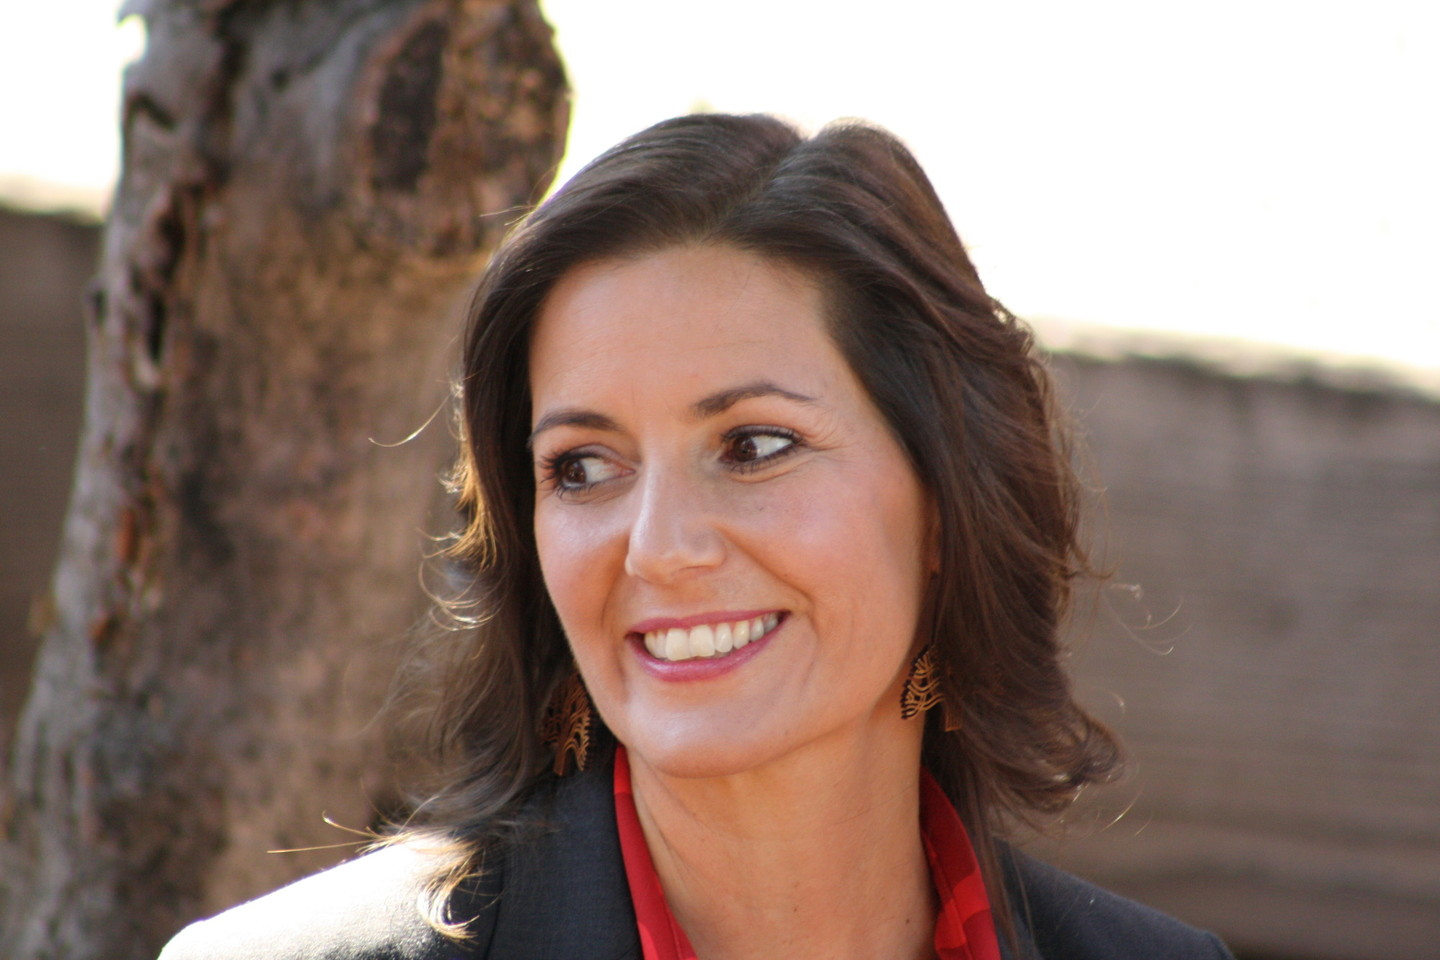 Schaaf Claims Victory in Oakland's Mayoral Race, Quan and Kaplan Concede